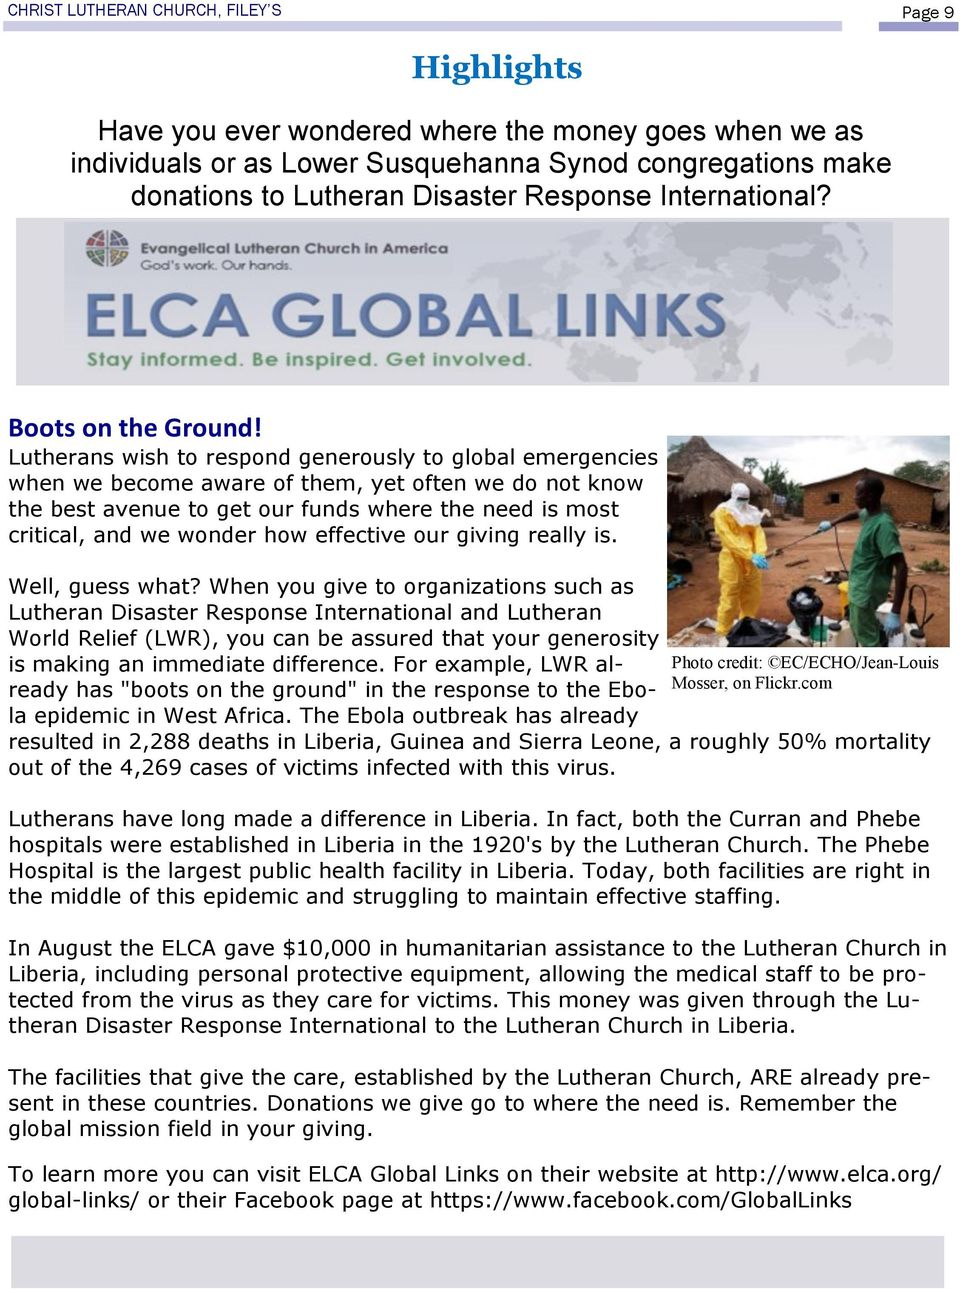 Lutherans wish to respond generously to global emergencies when we become aware of them, yet often we do not know the best avenue to get our funds where the need is most critical, and we wonder how